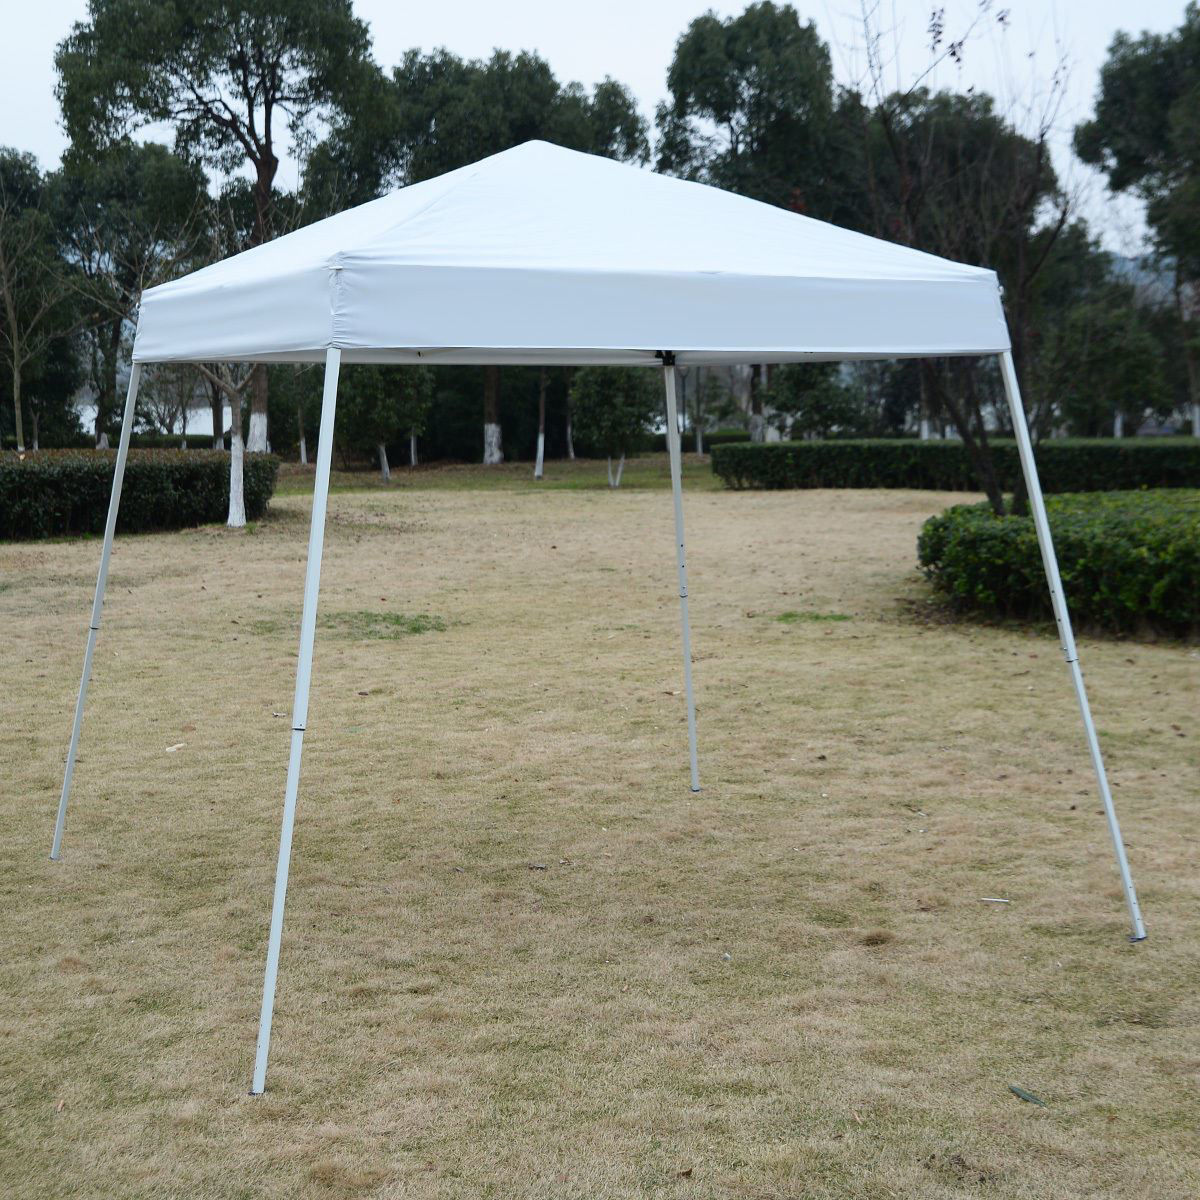 Picture of Outdoor 8'x8' EZ Pop Up Tent Gazebo with Carry Bag - White